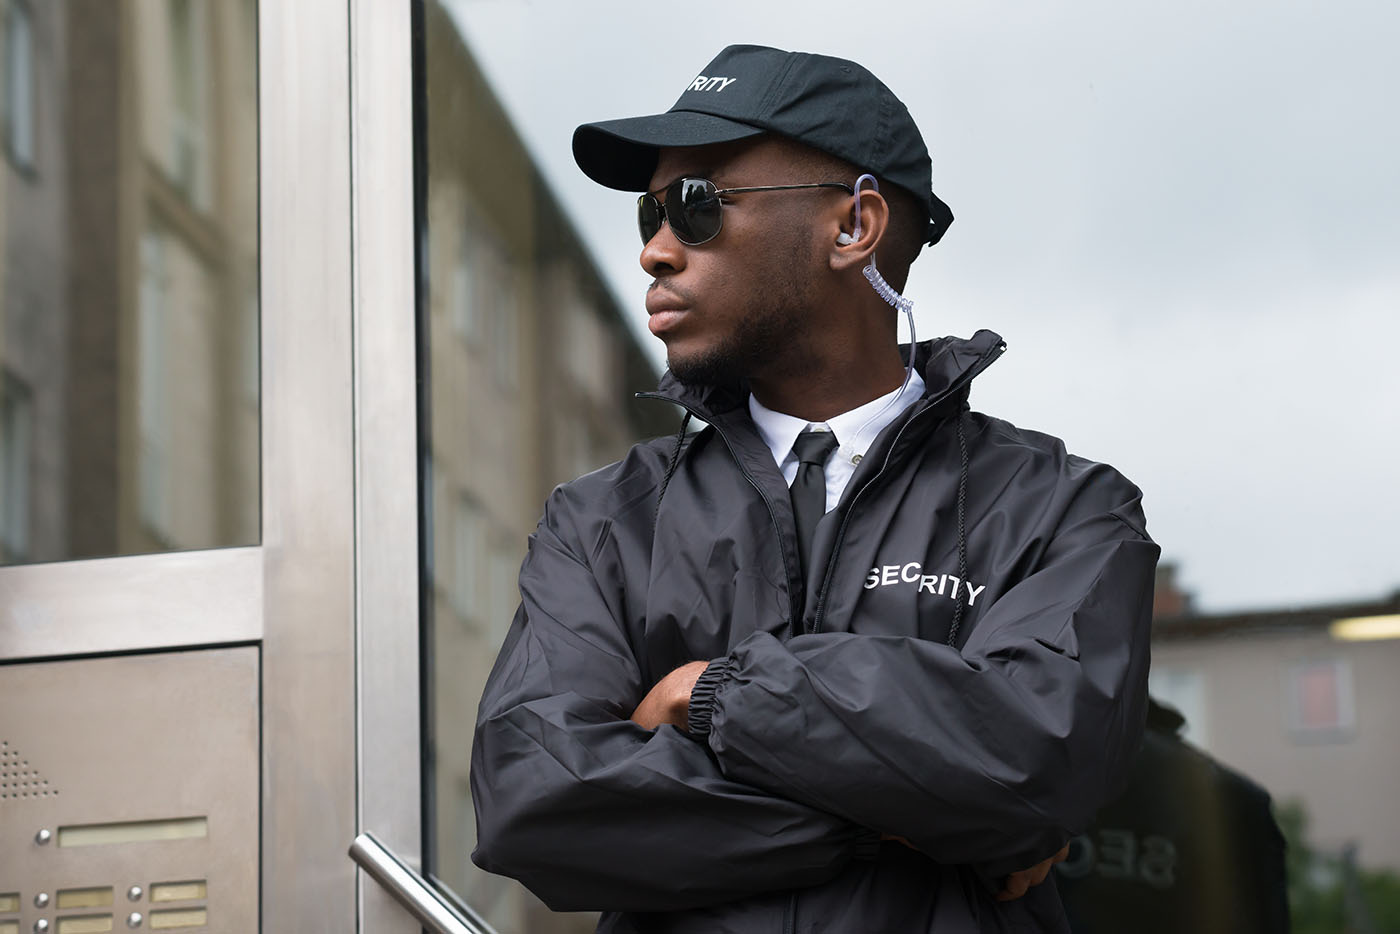 How to Become a Security Guard: Career and Salary Information